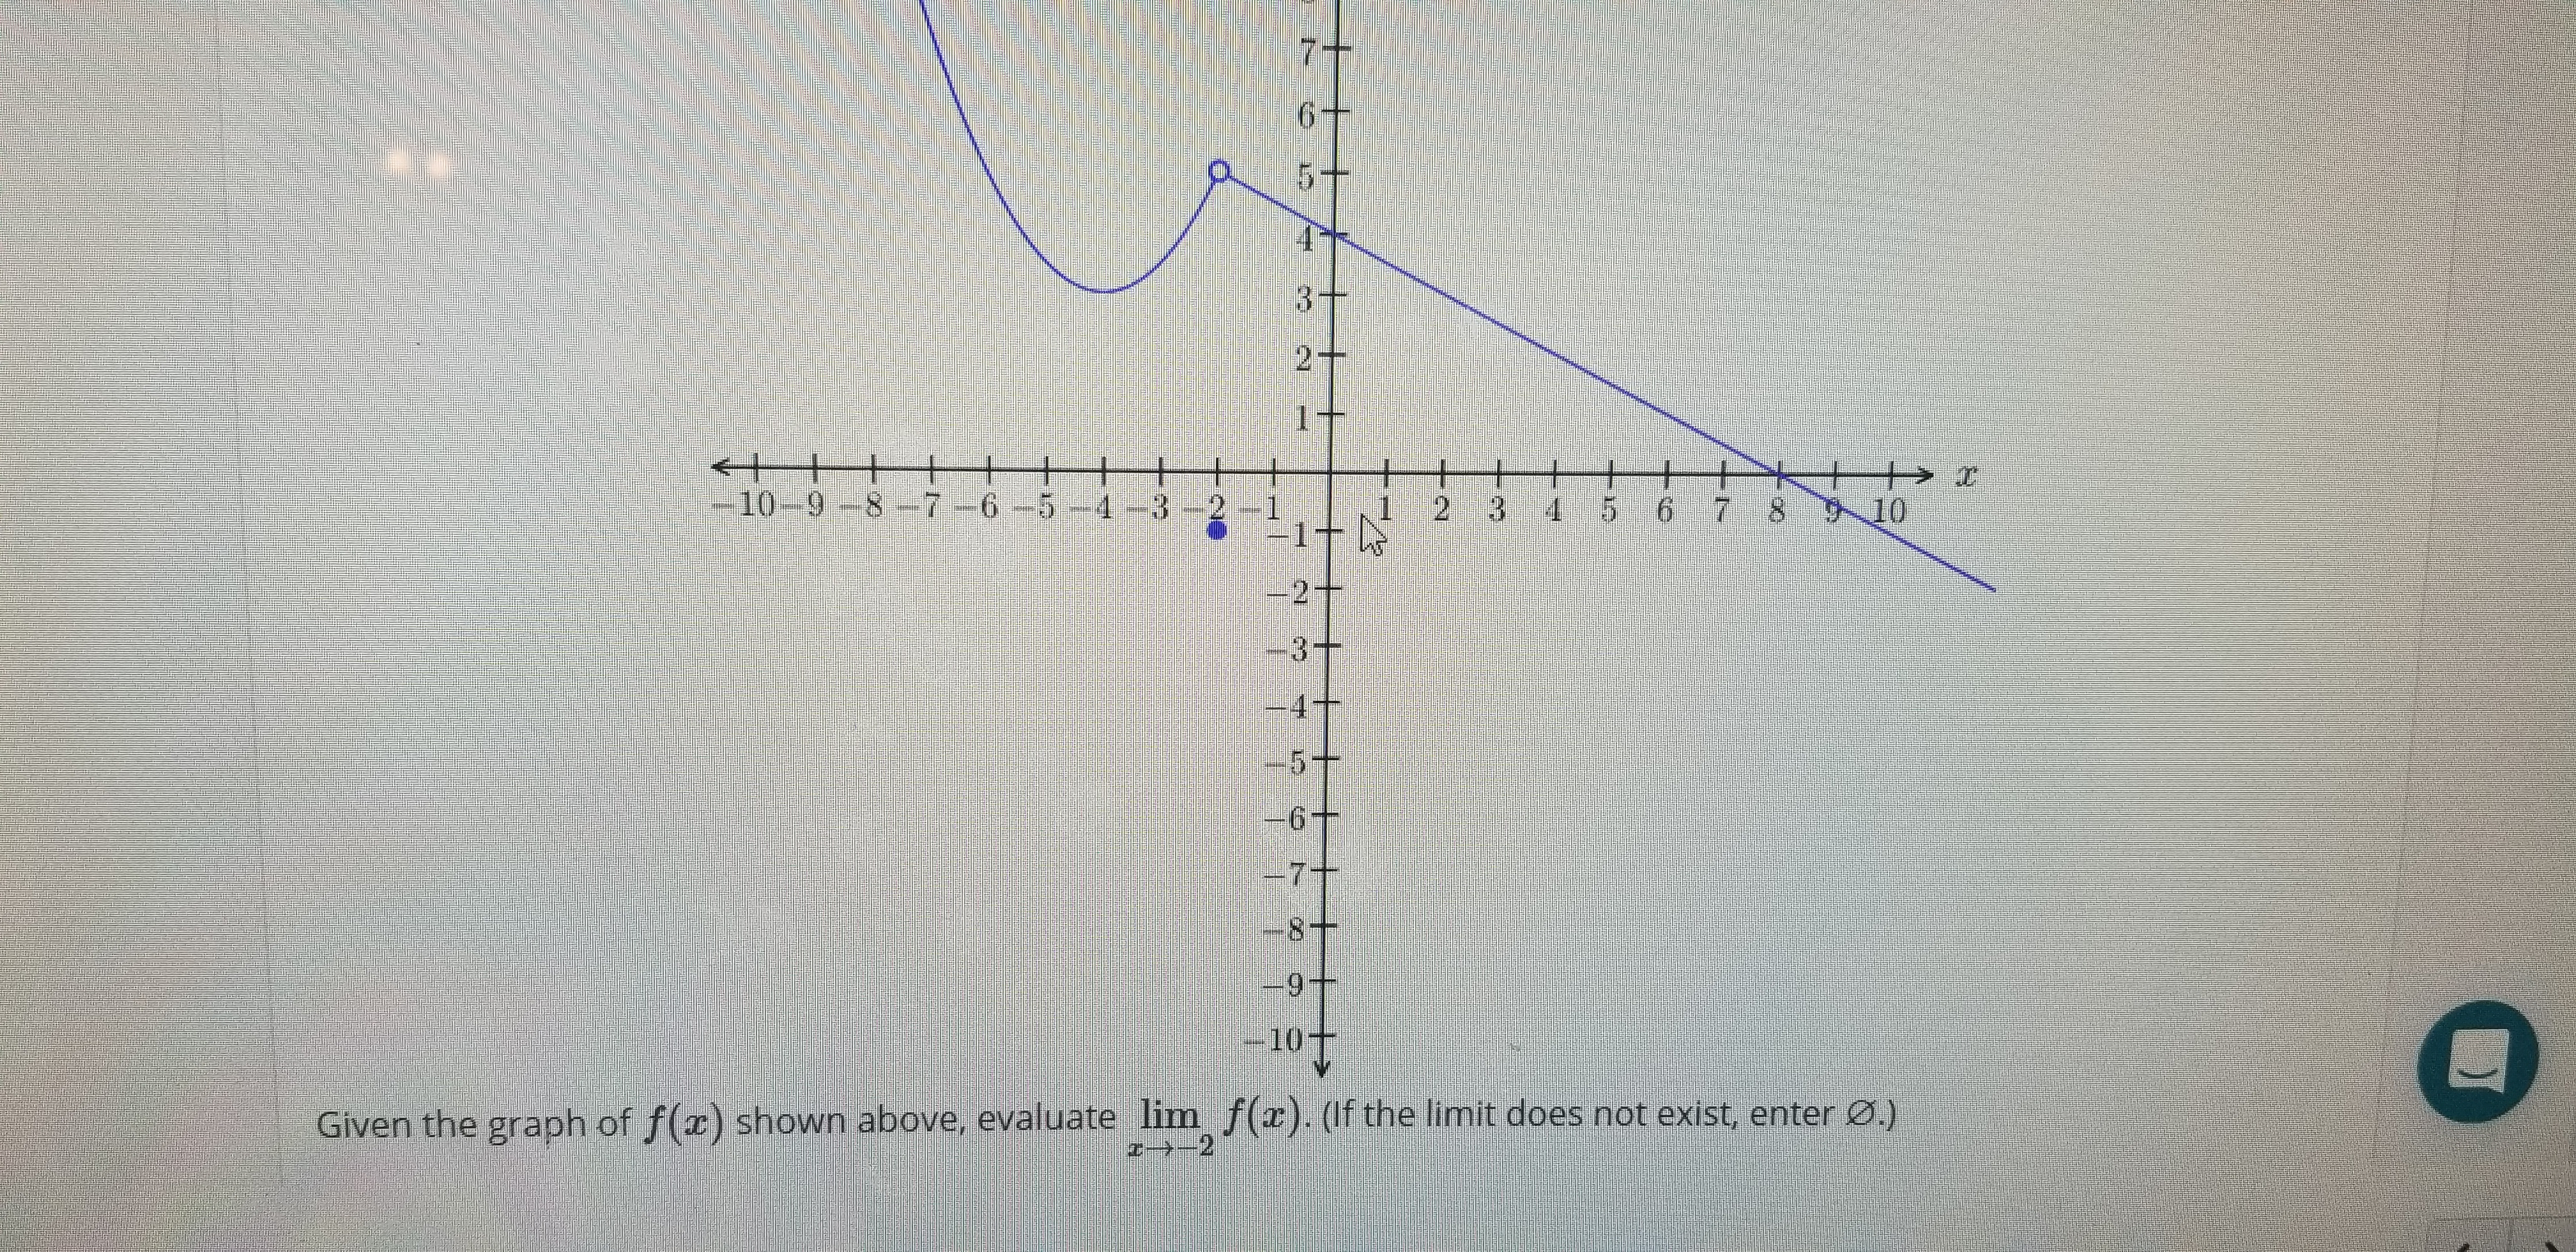 77 6 5 2T 10-9 7-6-5 4-3-2--1 1T 2 3 5 6 7 8910 2 3 4- 6T 7T 8 9 T 10 s not exist, enter 0.) Given the graph of f(x) shown above, evaluate lim f(r). (If the limit doe 2